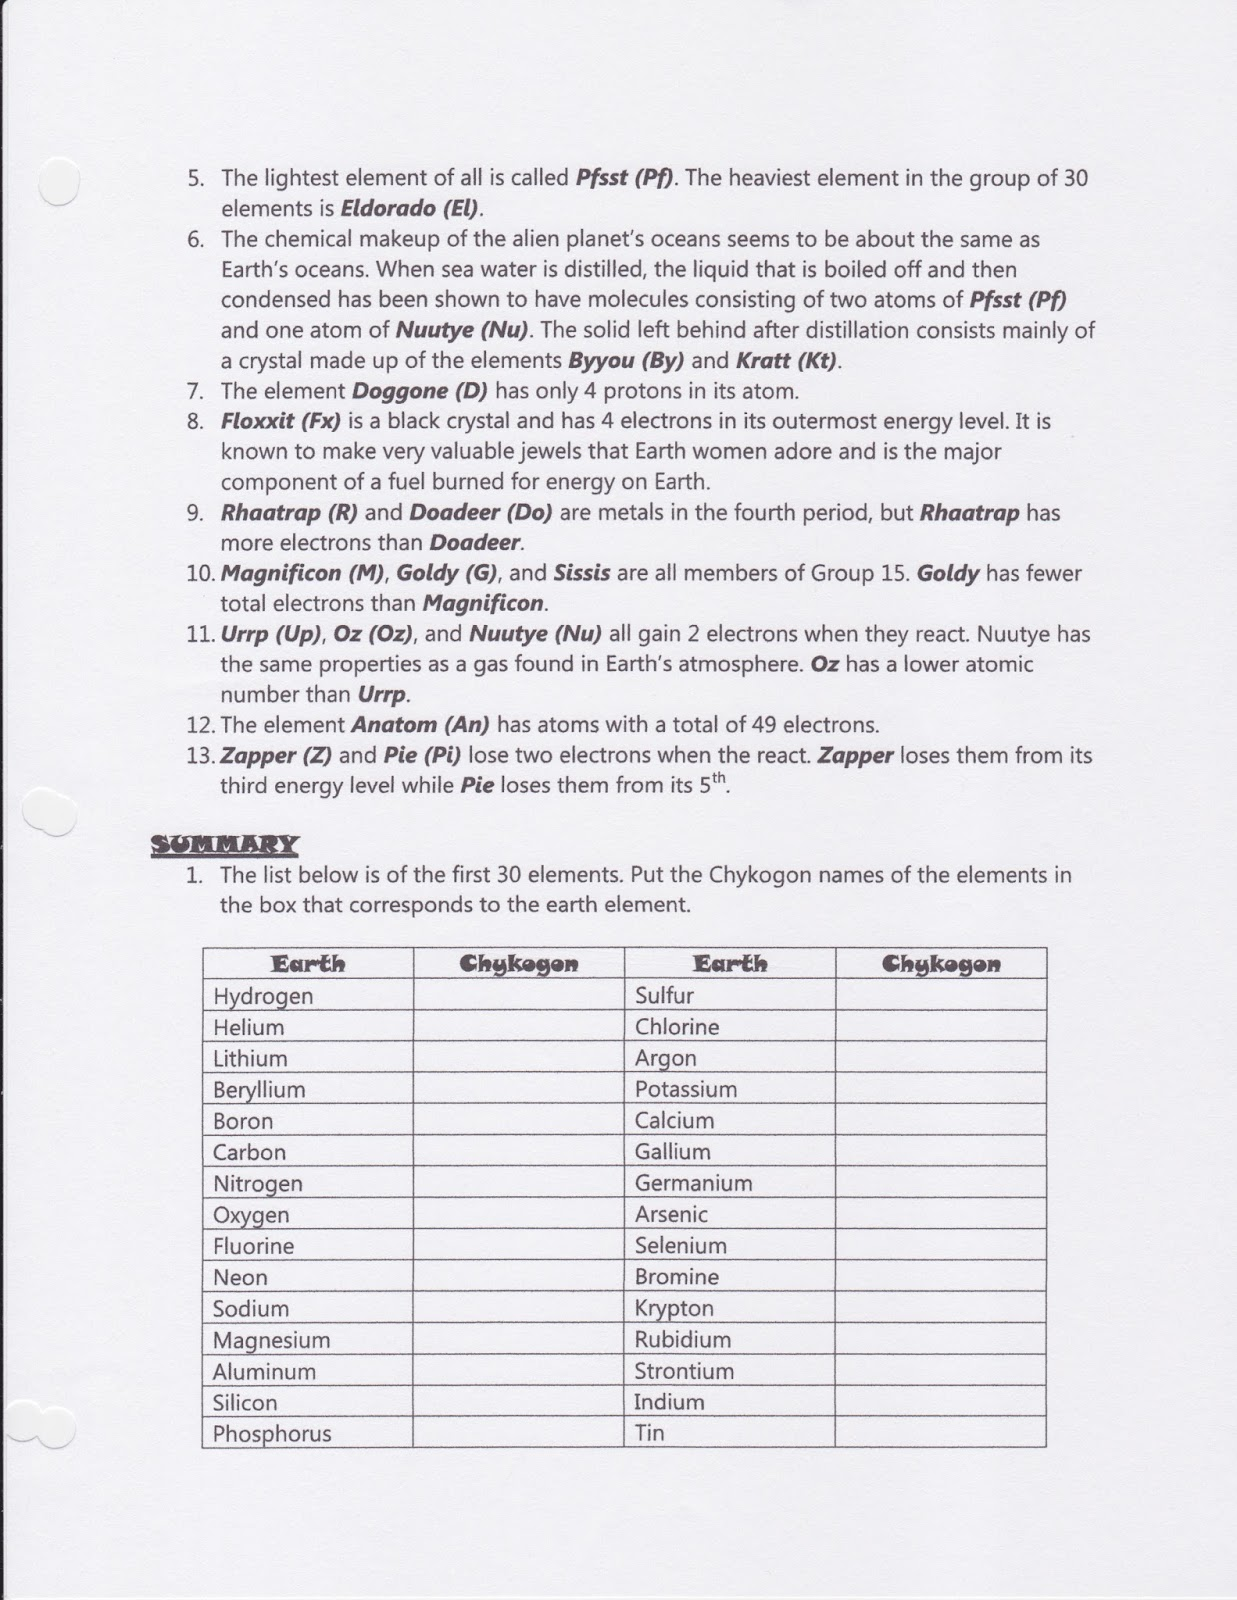 Worksheets Alien Periodic Table Worksheet Answers dr gaydens chemistry class thursdayfriday 2223 october 2015 class